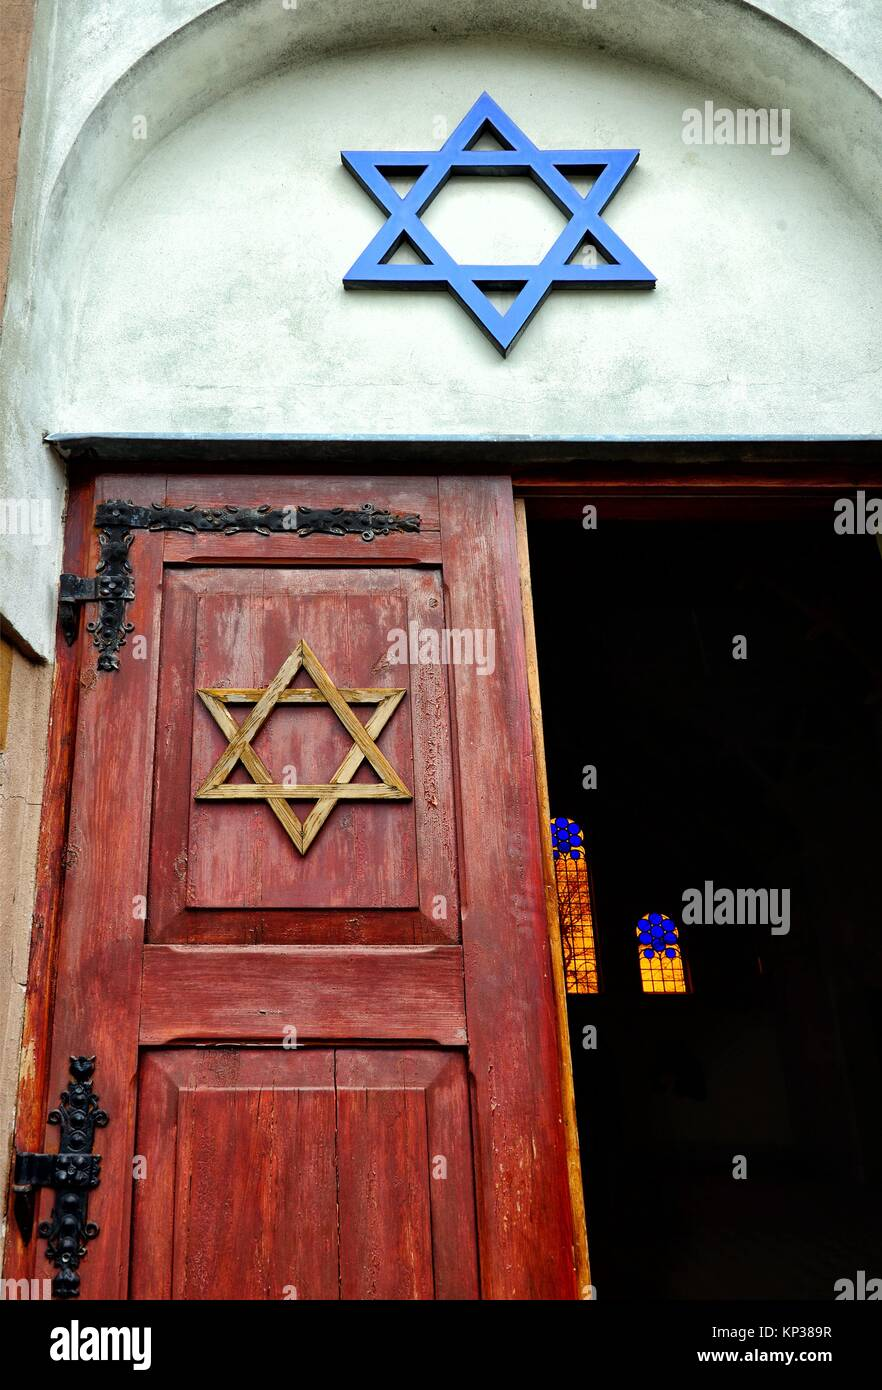 Jewish Emblem Stock Photos Jewish Emblem Stock Images Alamy